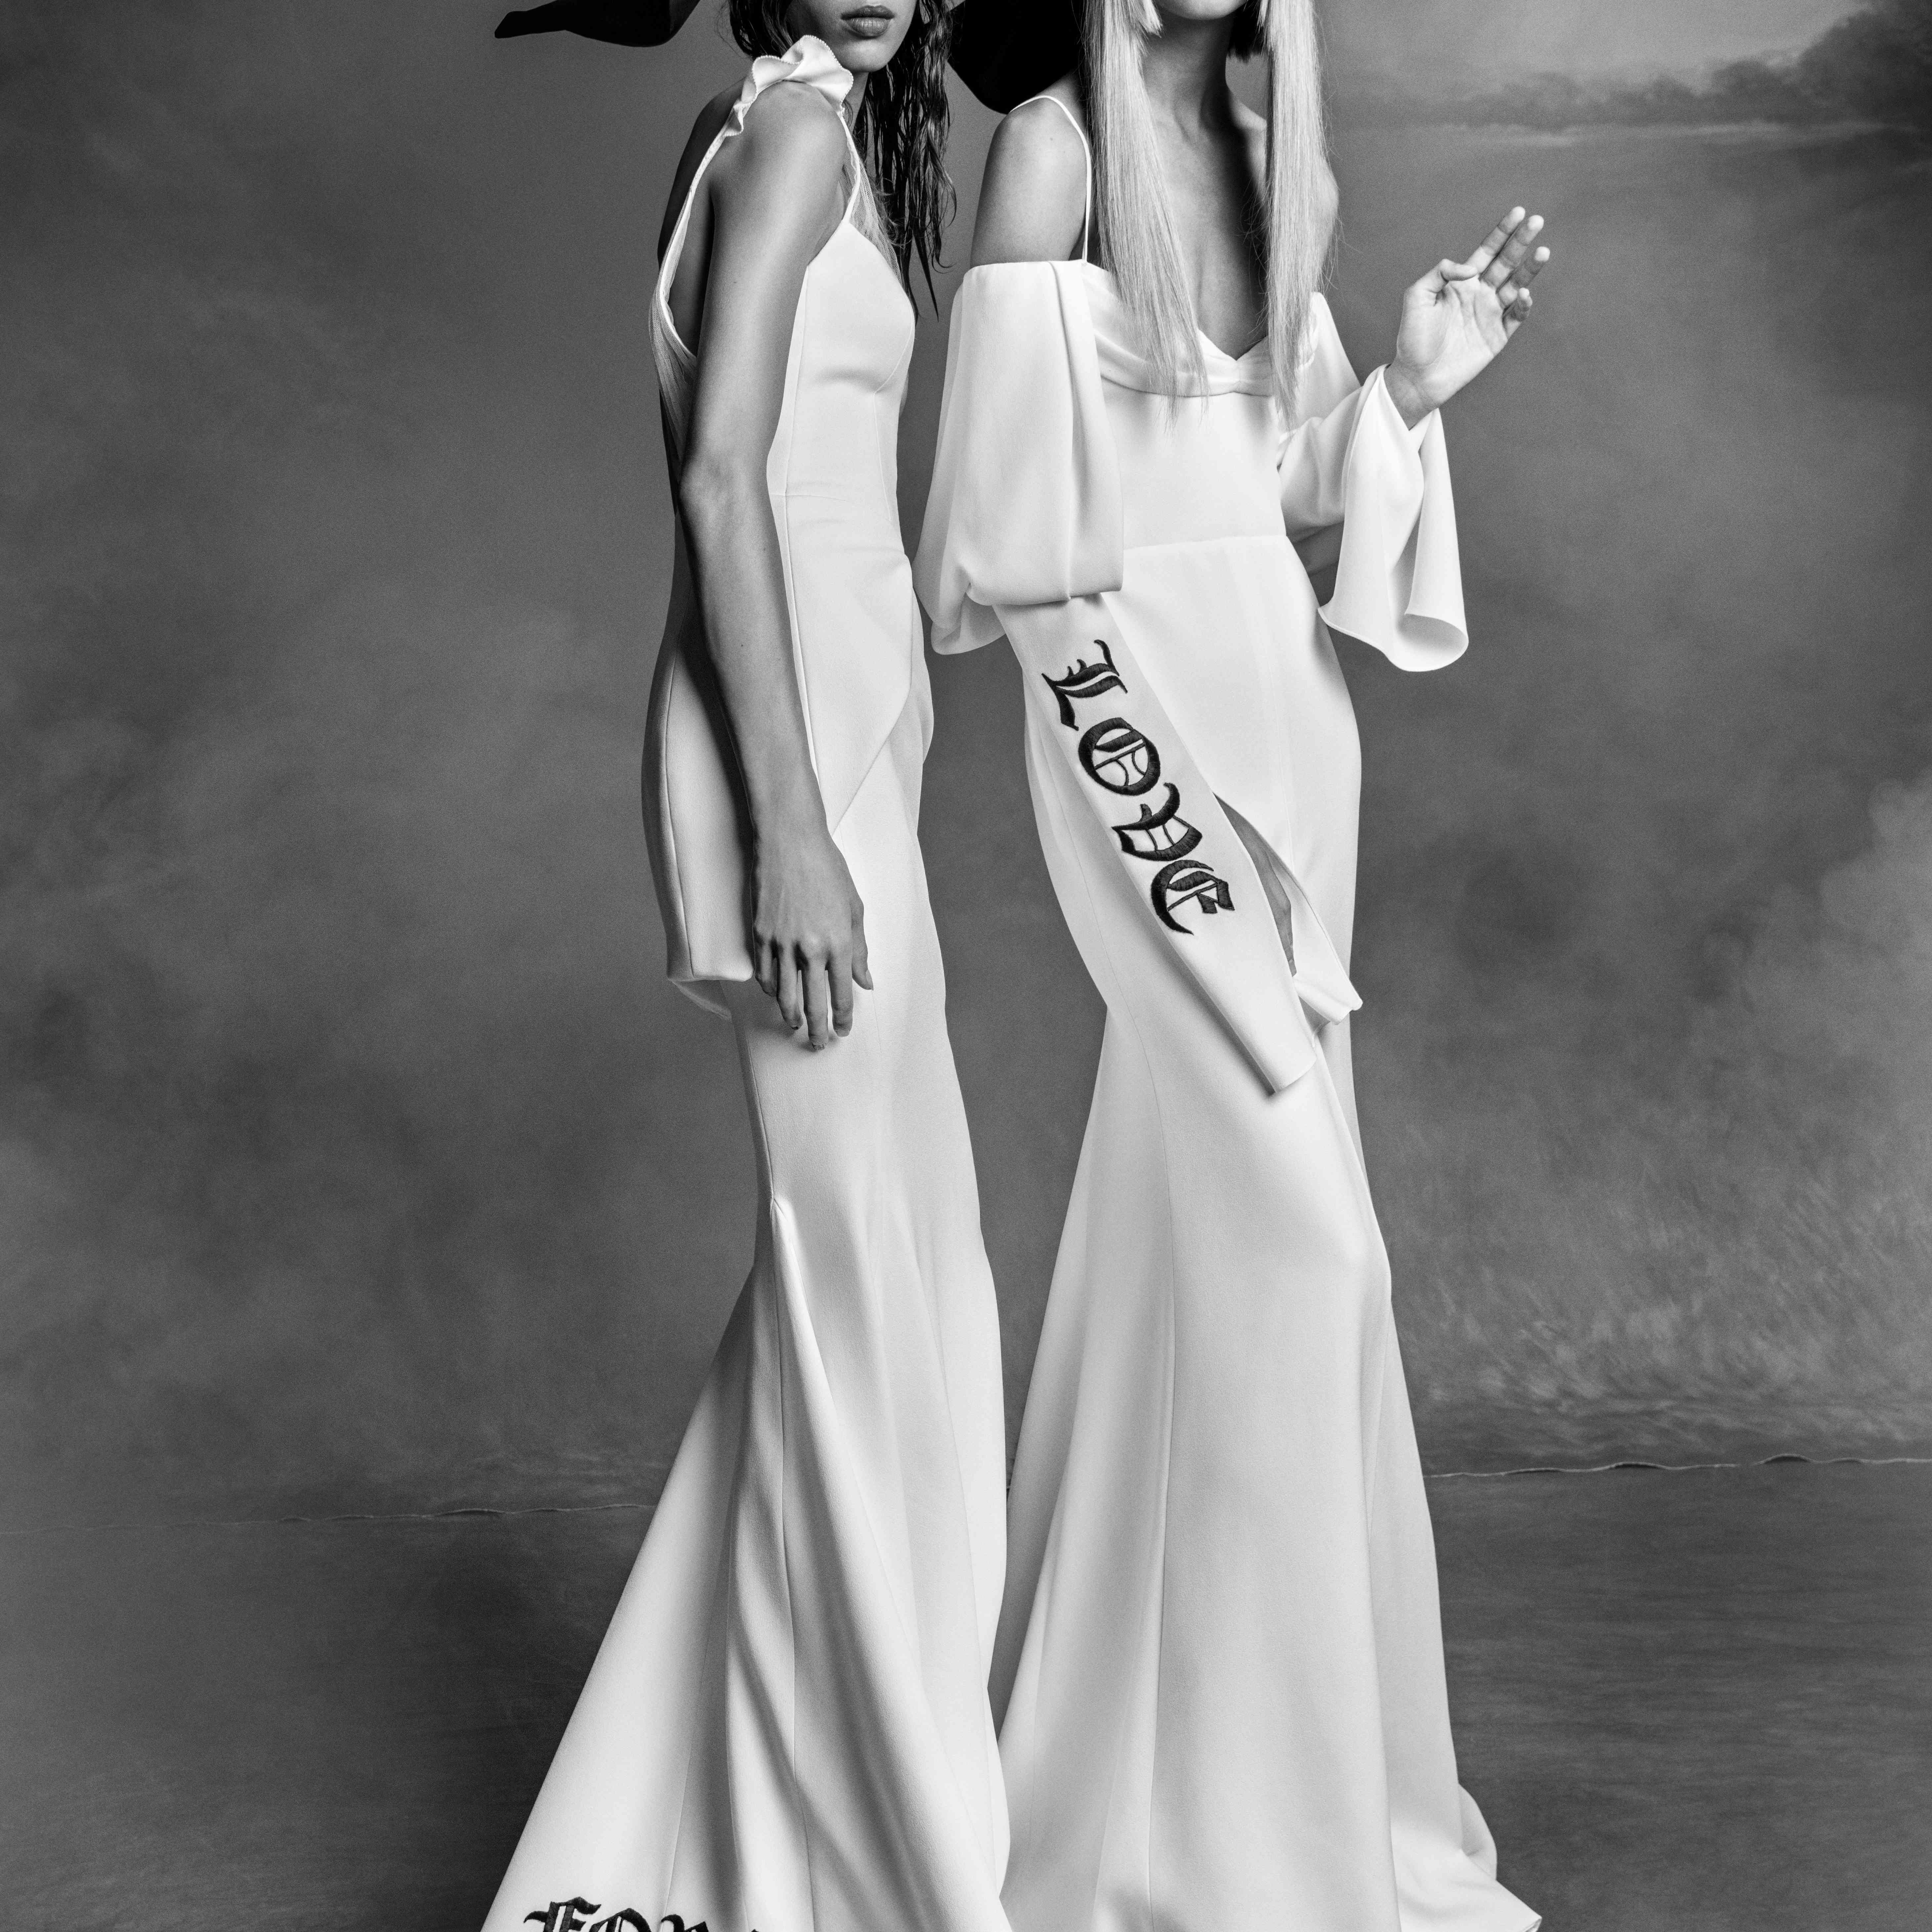 Two models in white bridal gowns, the one on left with the word